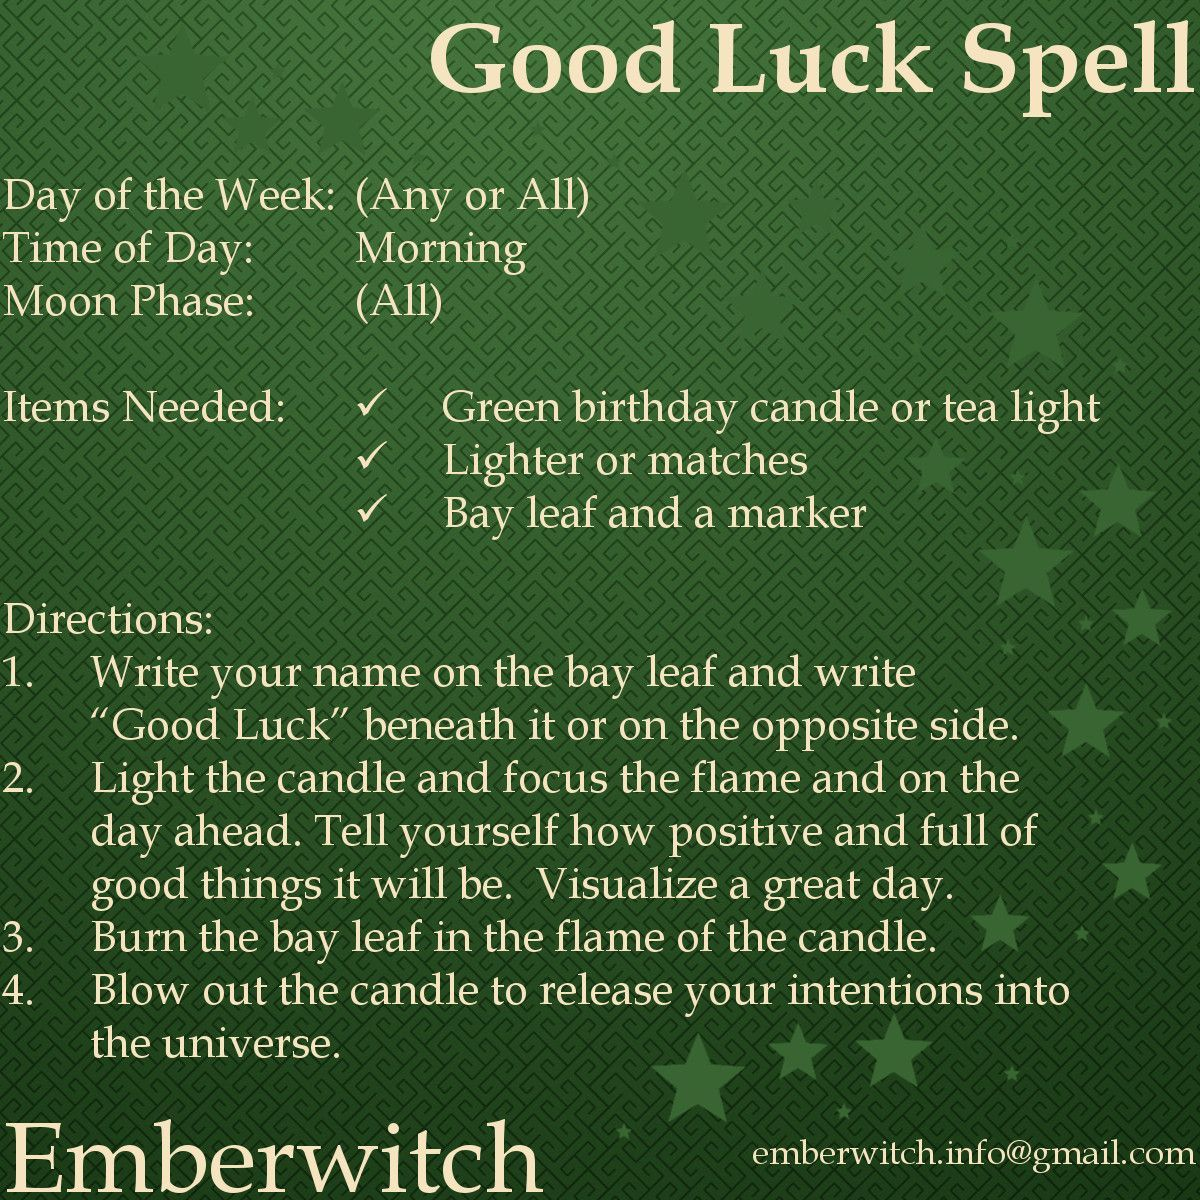 Good Luck Spell #moneyspell Simple spell for good luck that can be done daily #greenwitchcraft